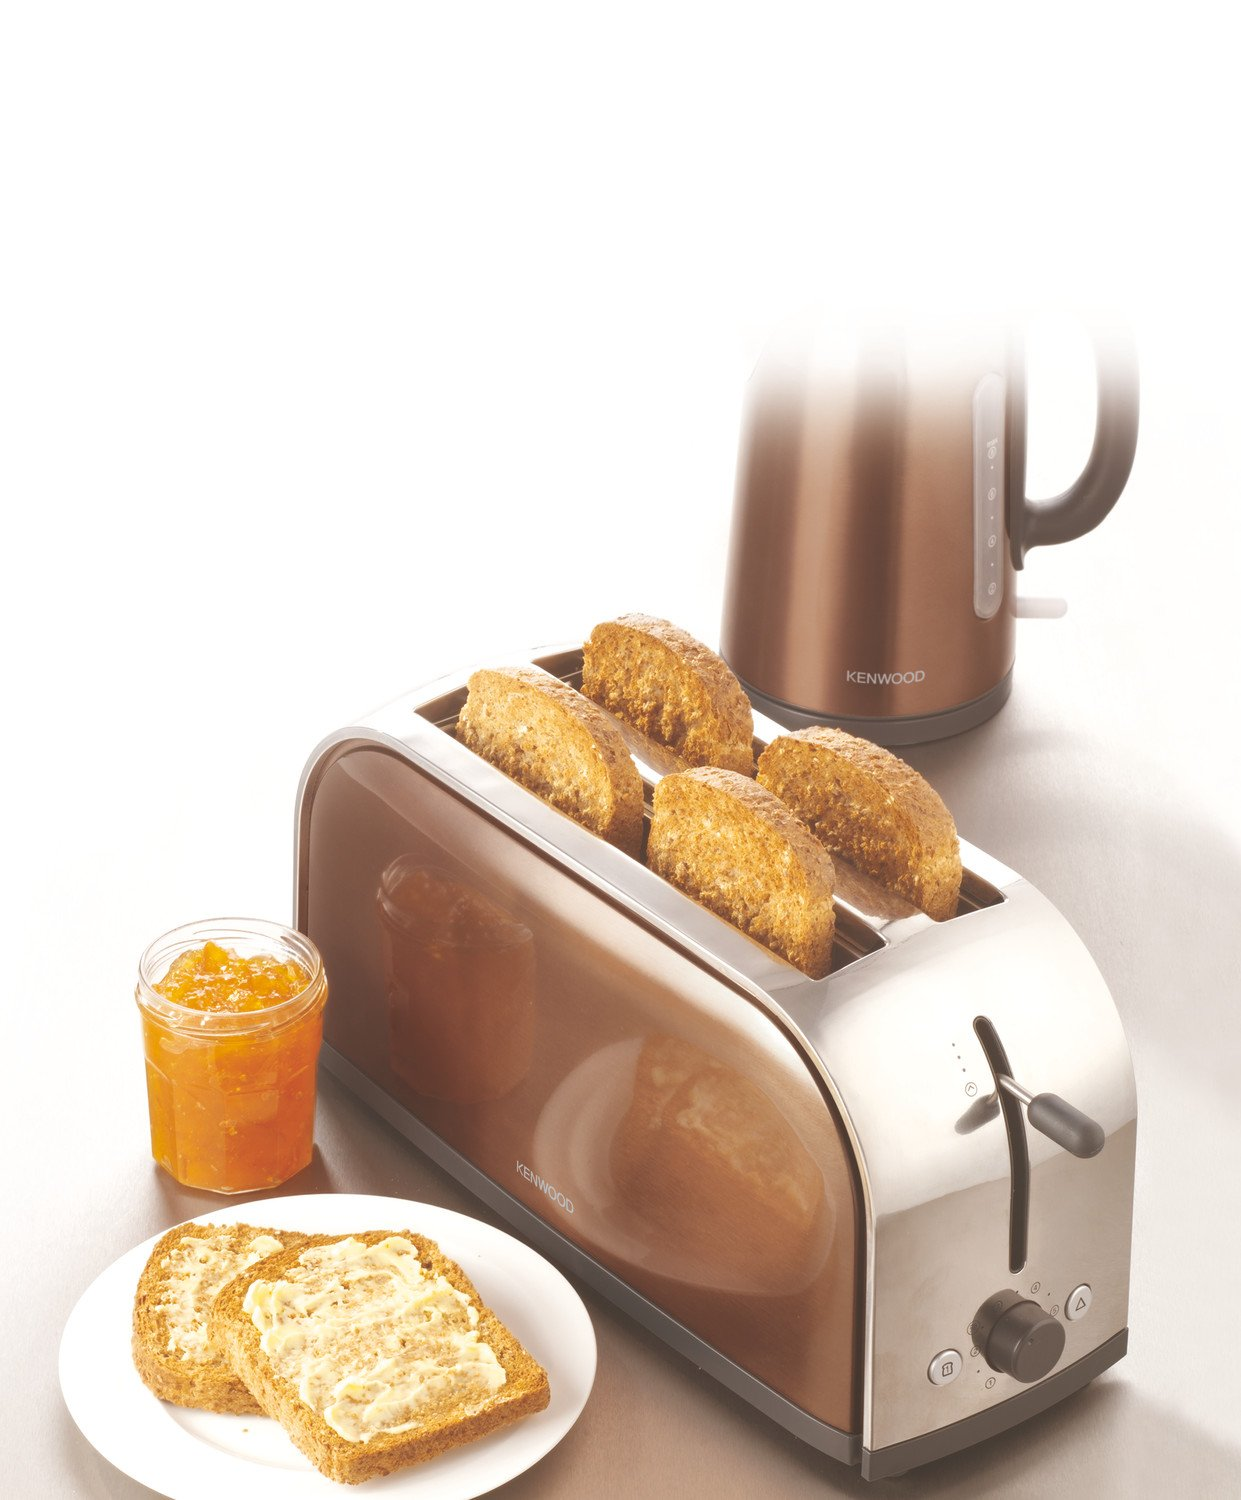 kenwood 4 tranches ttm127 2 fente metallics croque monsieur grille pain ebay. Black Bedroom Furniture Sets. Home Design Ideas